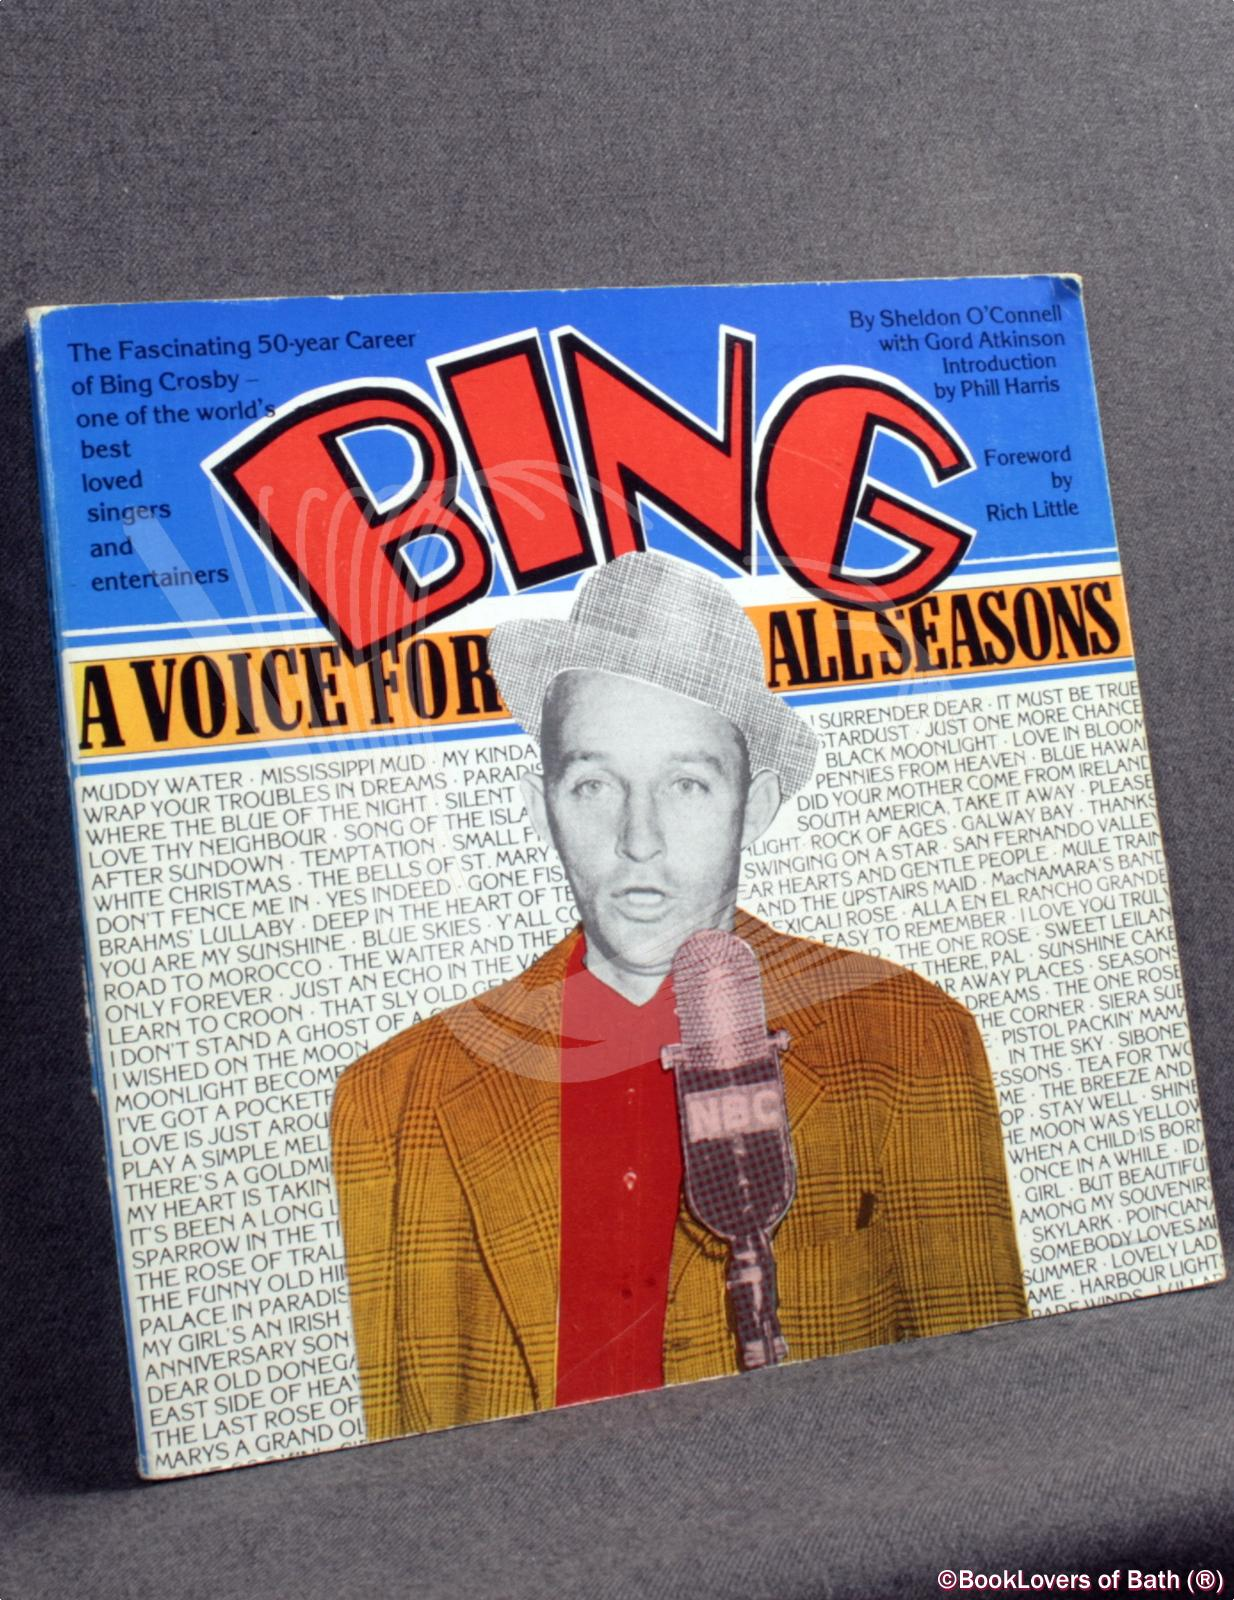 Bing: A Voice for All Seasons - Sheldon O'Connell with Gord Atkinson